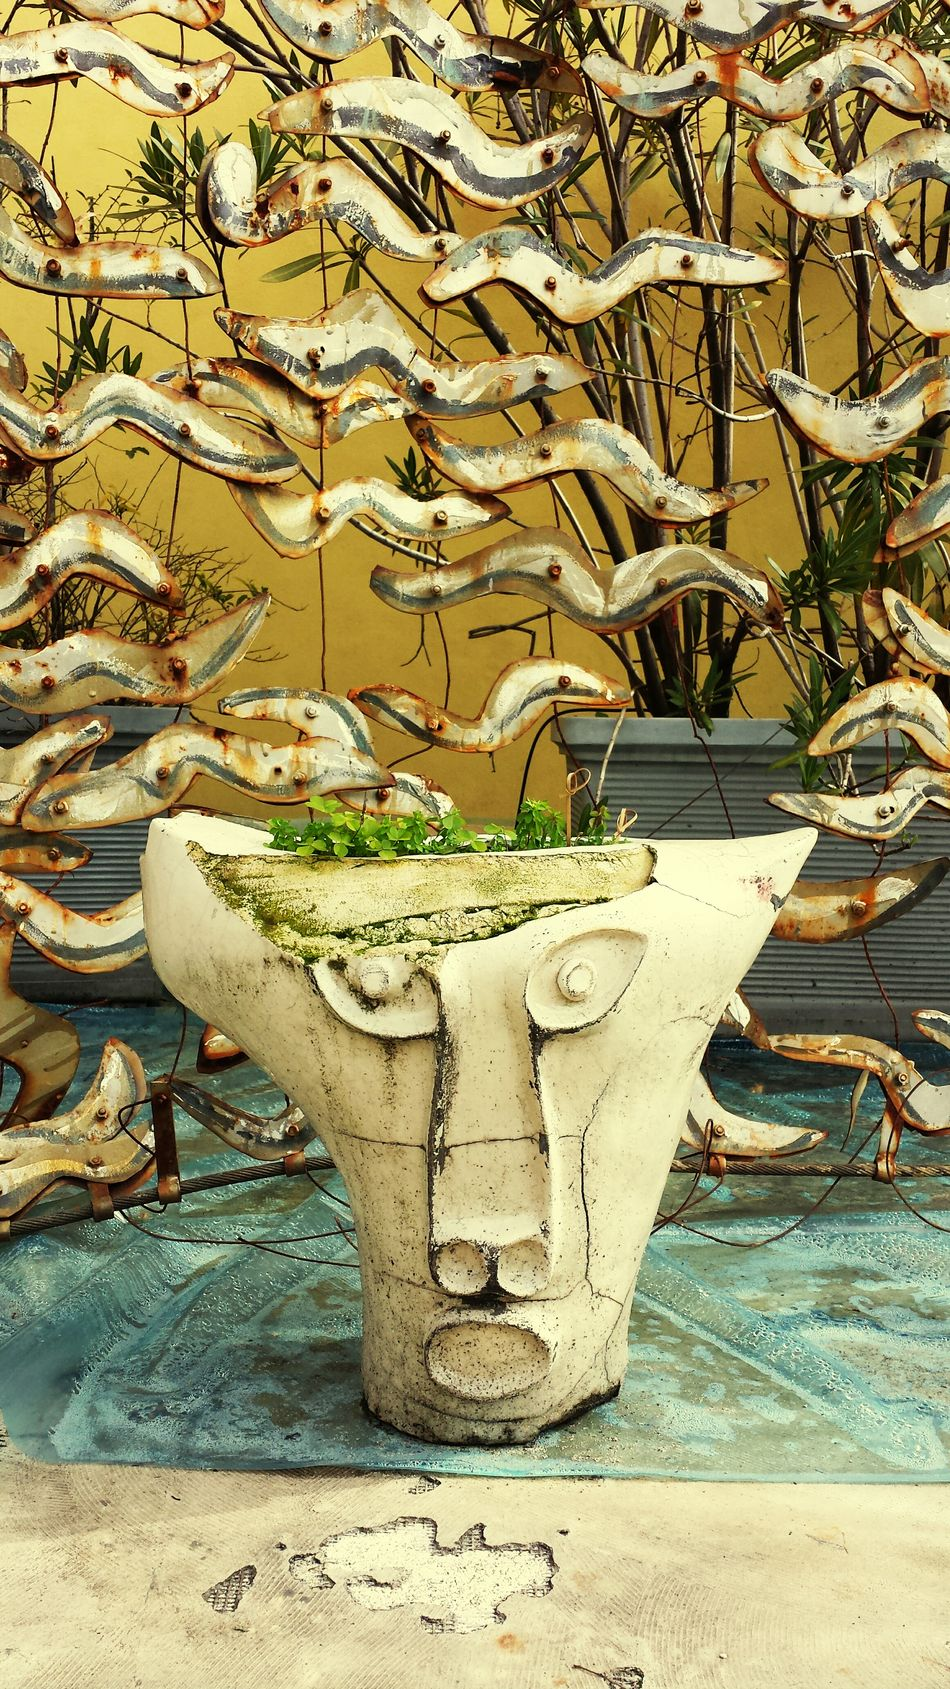 Milan Roof Garden Carla Sozzani Gallery Amazing roof garden in carla sozzani's gallery, I'd spend all my afternoons there